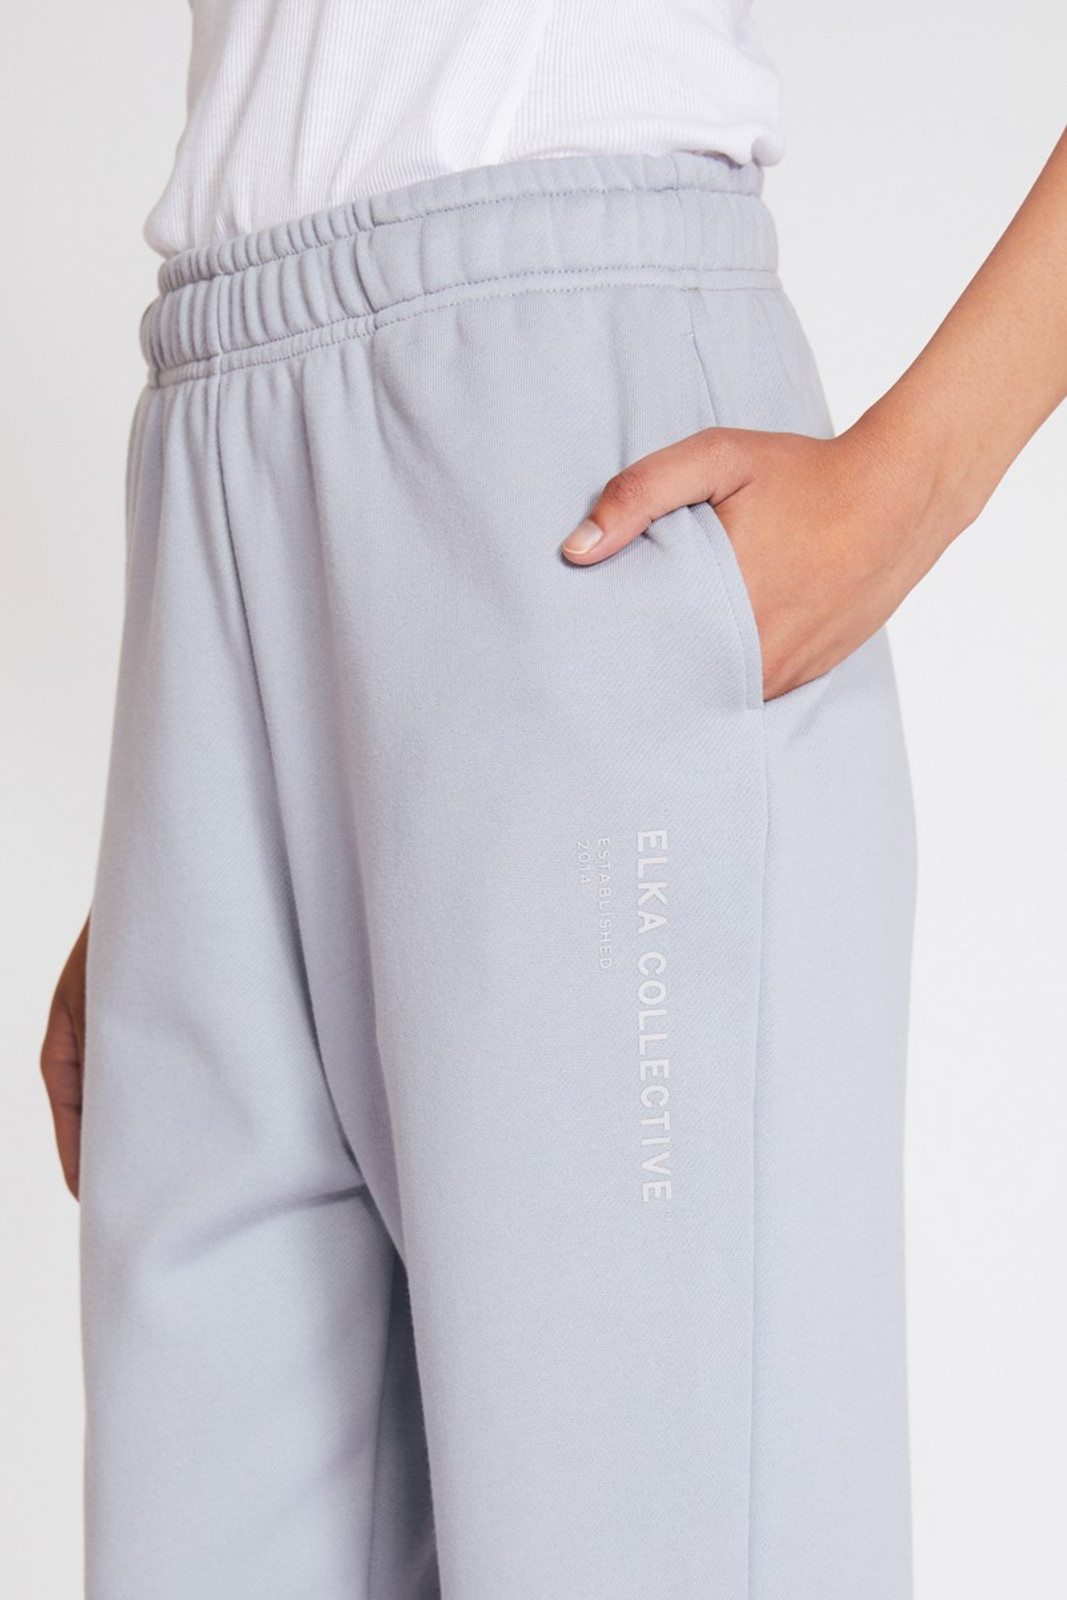 Elka Collective Trademark Trackpant Blue  1